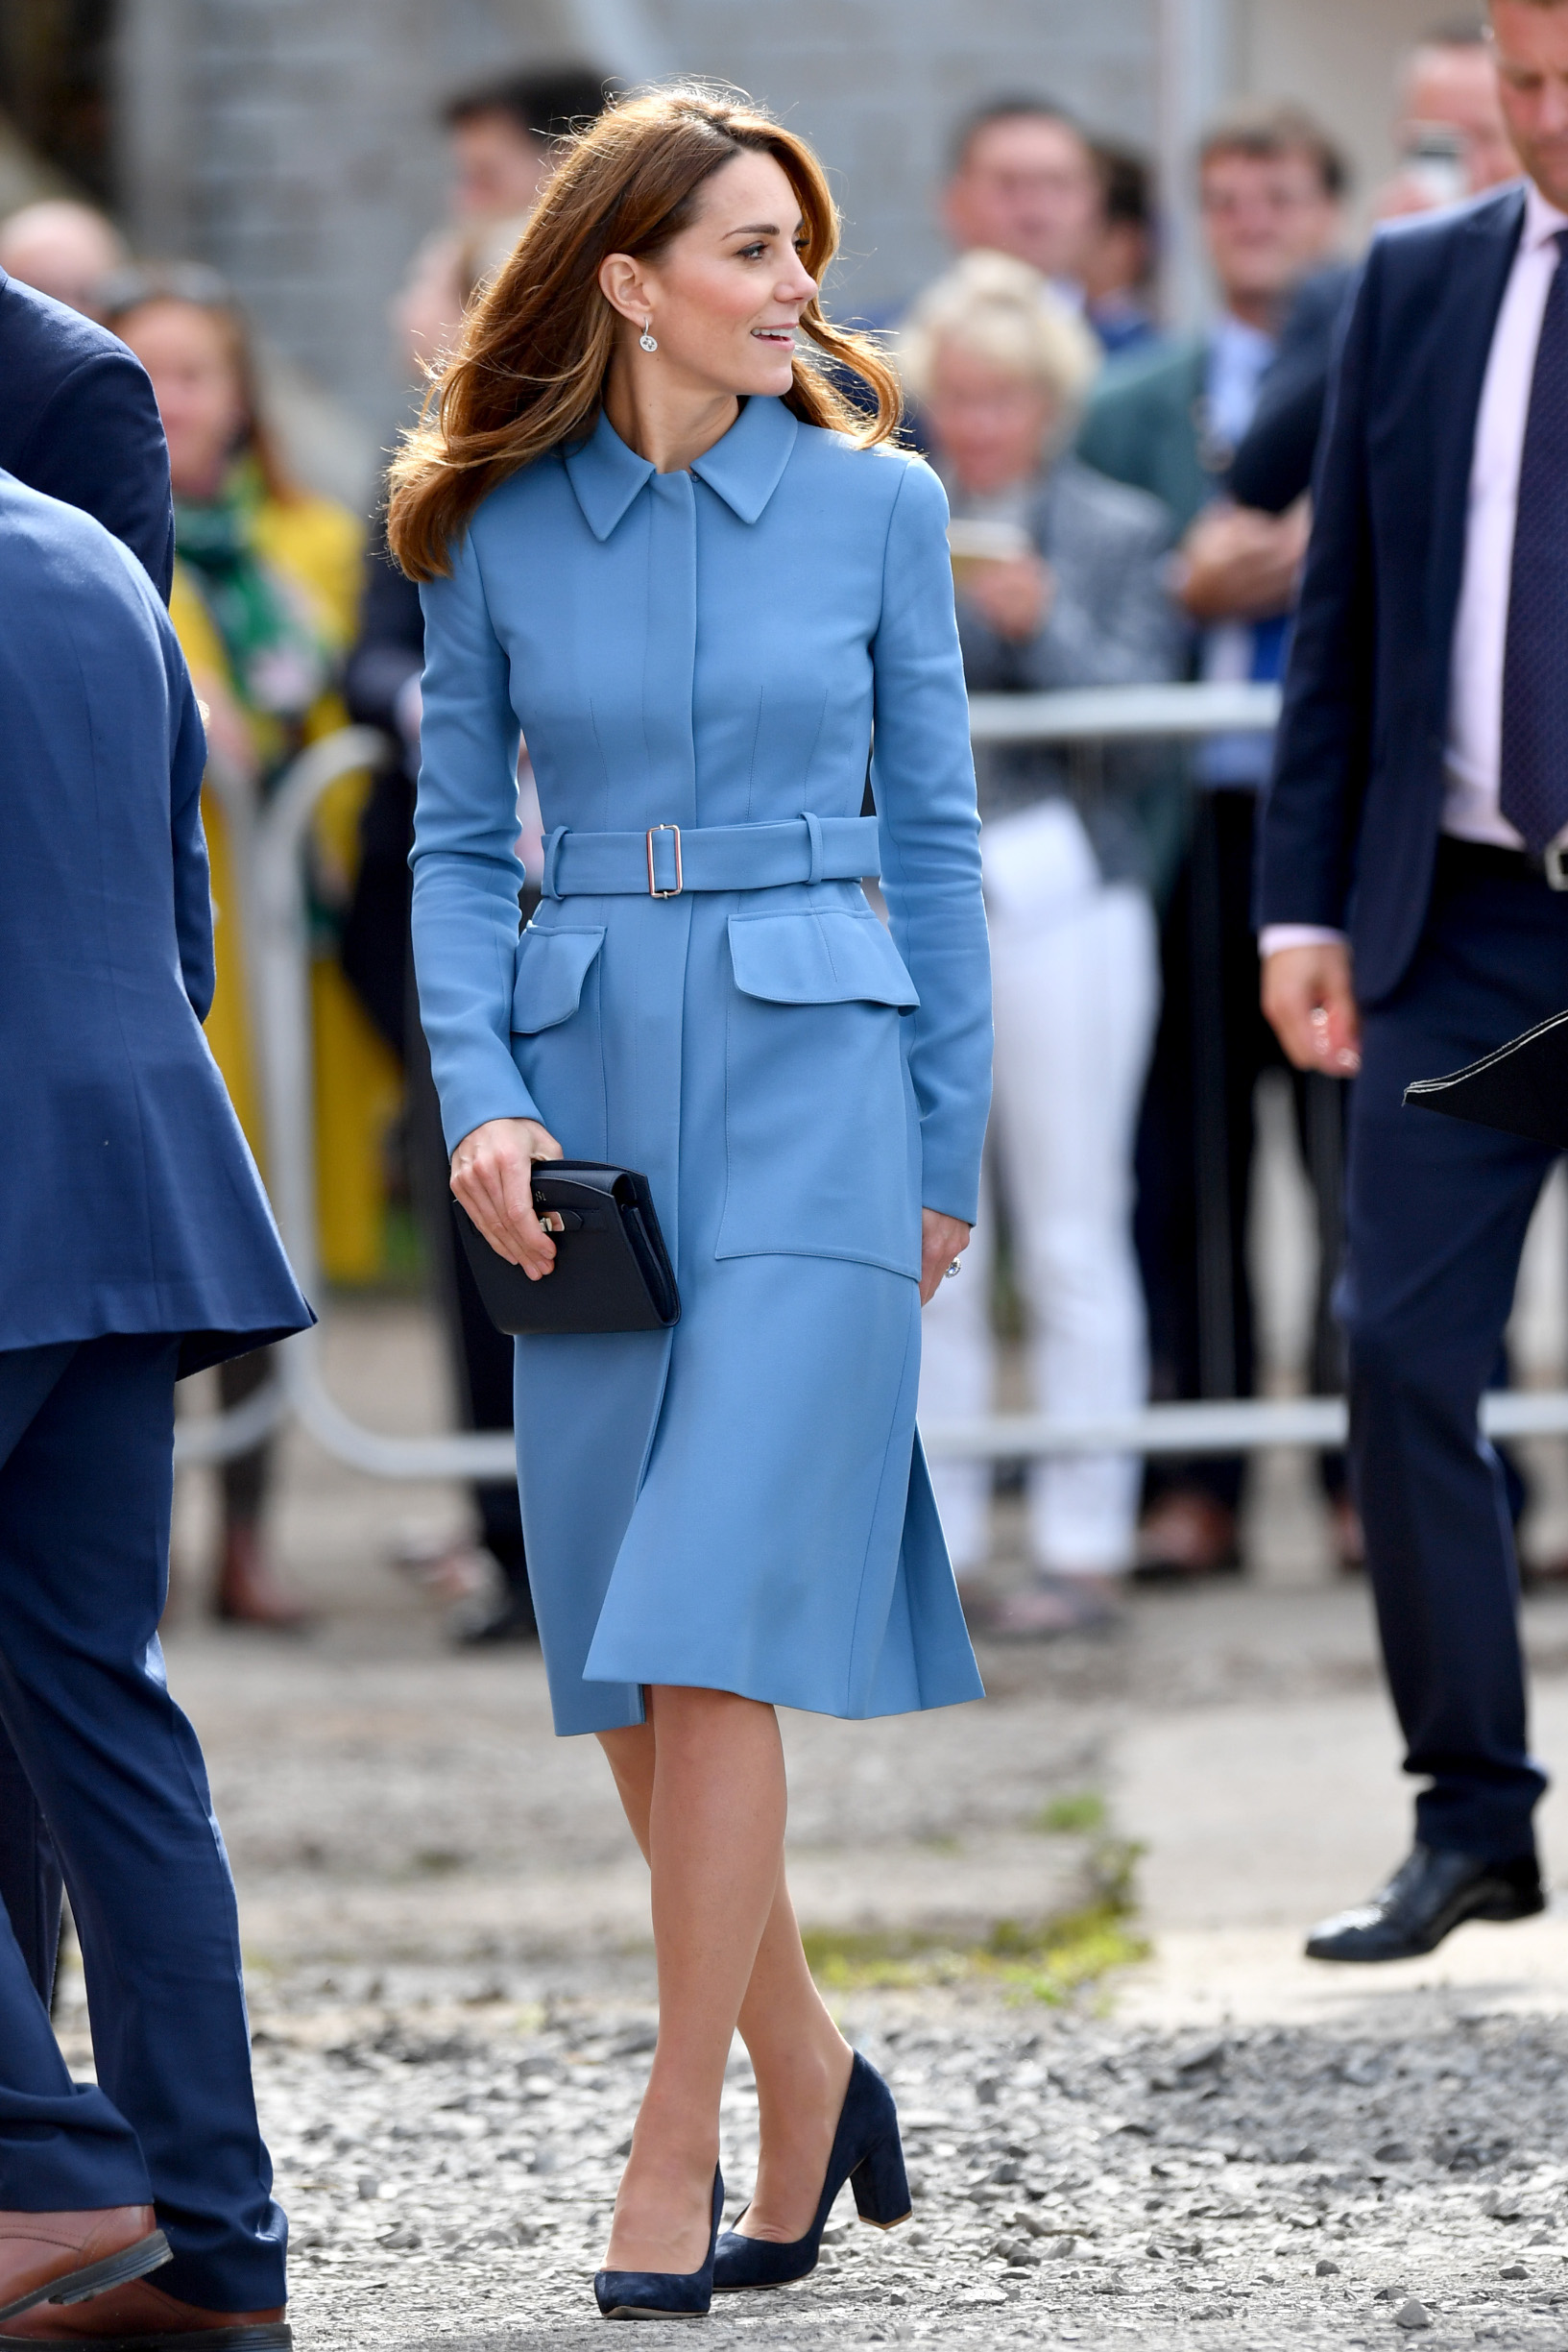 BIRKENHEAD, ENGLAND - SEPTEMBER 26: Catherine, Duchess of Cambridge attend the naming ceremony for The RSS Sir David Attenborough on September 26, 2019 in Birkenhead, England. (Photo by Anthony Devlin/Getty Images)